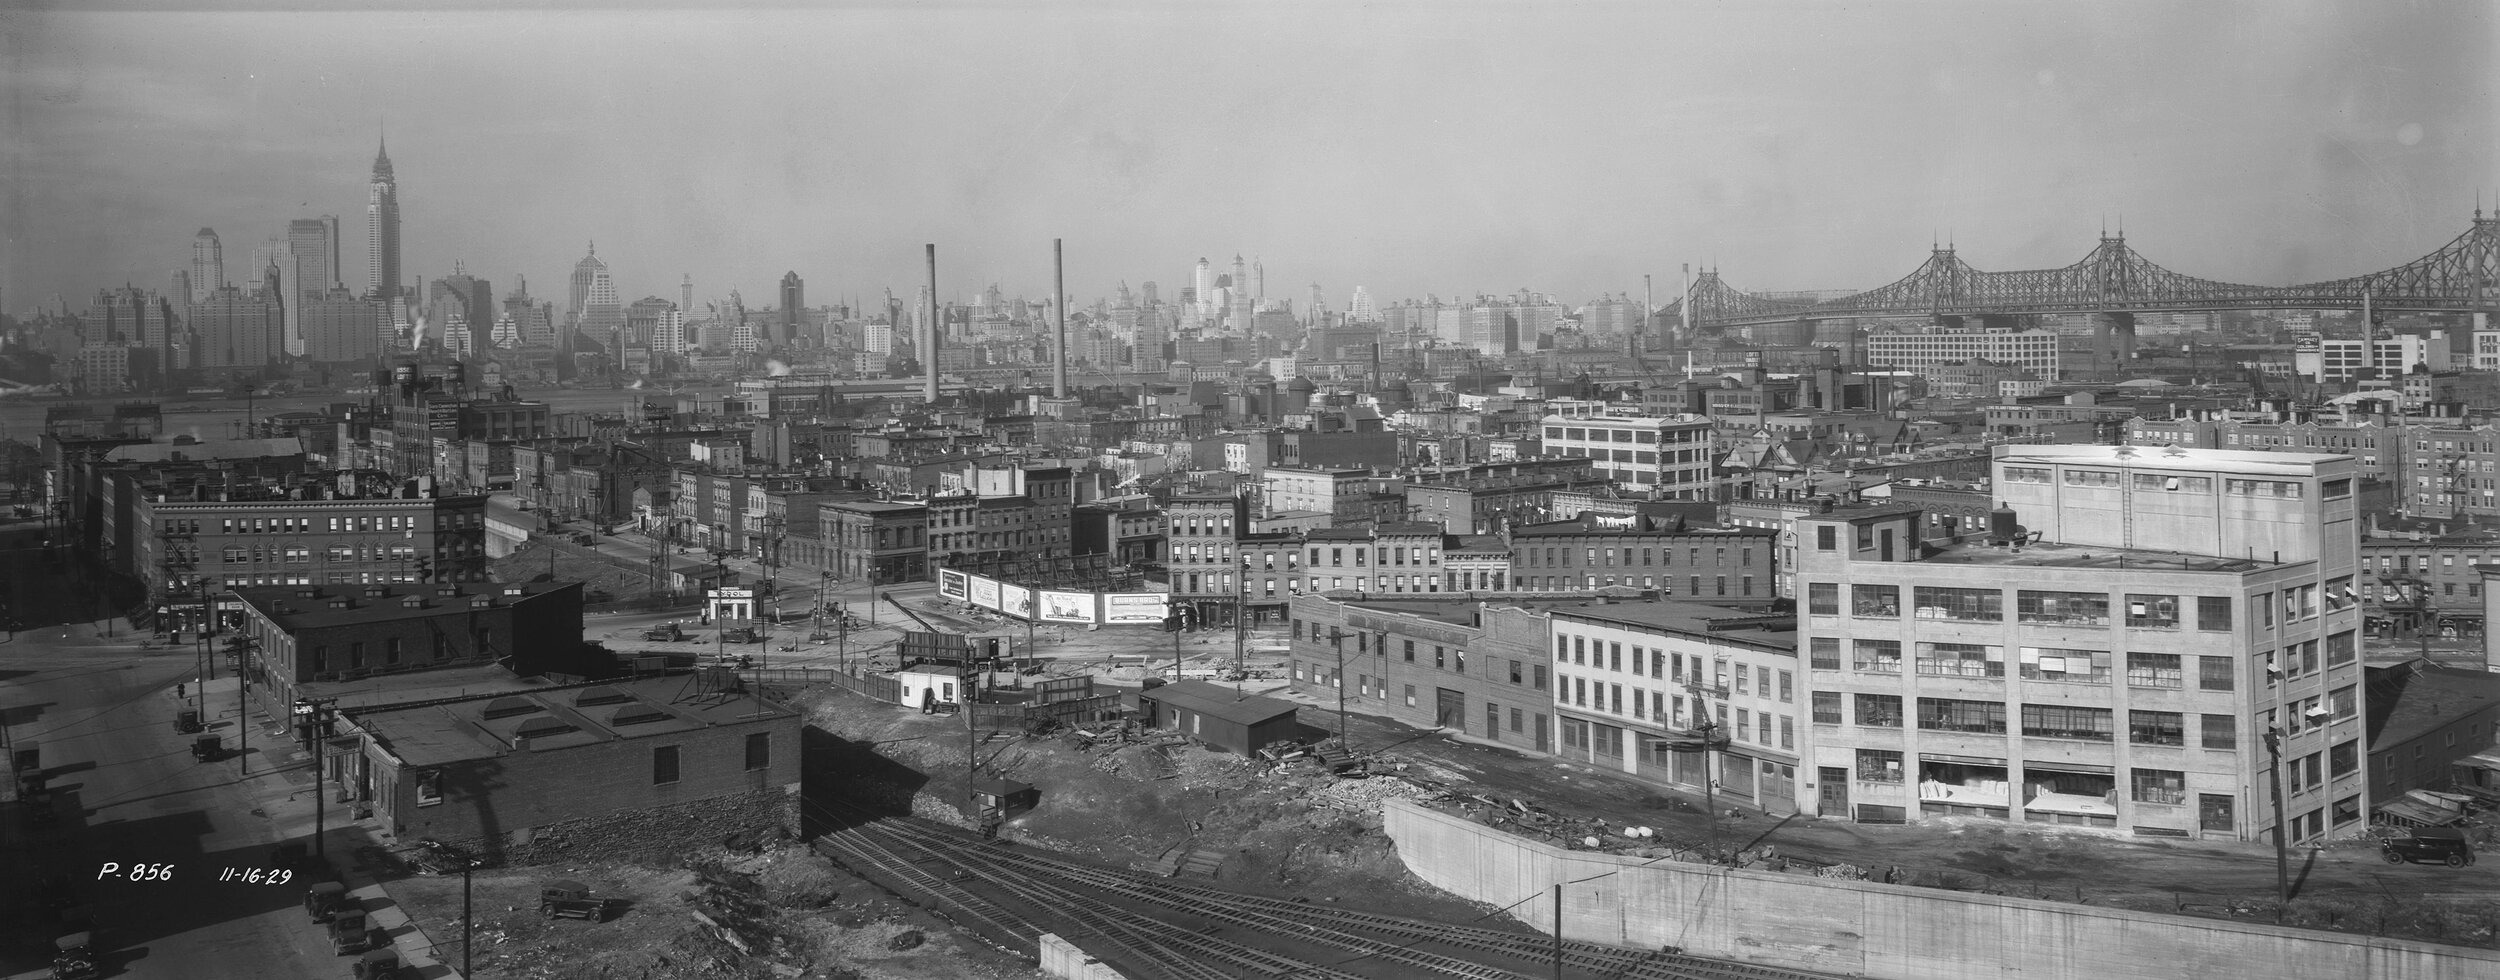 P-856:  Elevated view of Long Island City south of the Queensboro Bridge (visible at right), looking toward Manhattan, November 16, 1929. Borough President Queens Collection, NYC Municipal Archives.